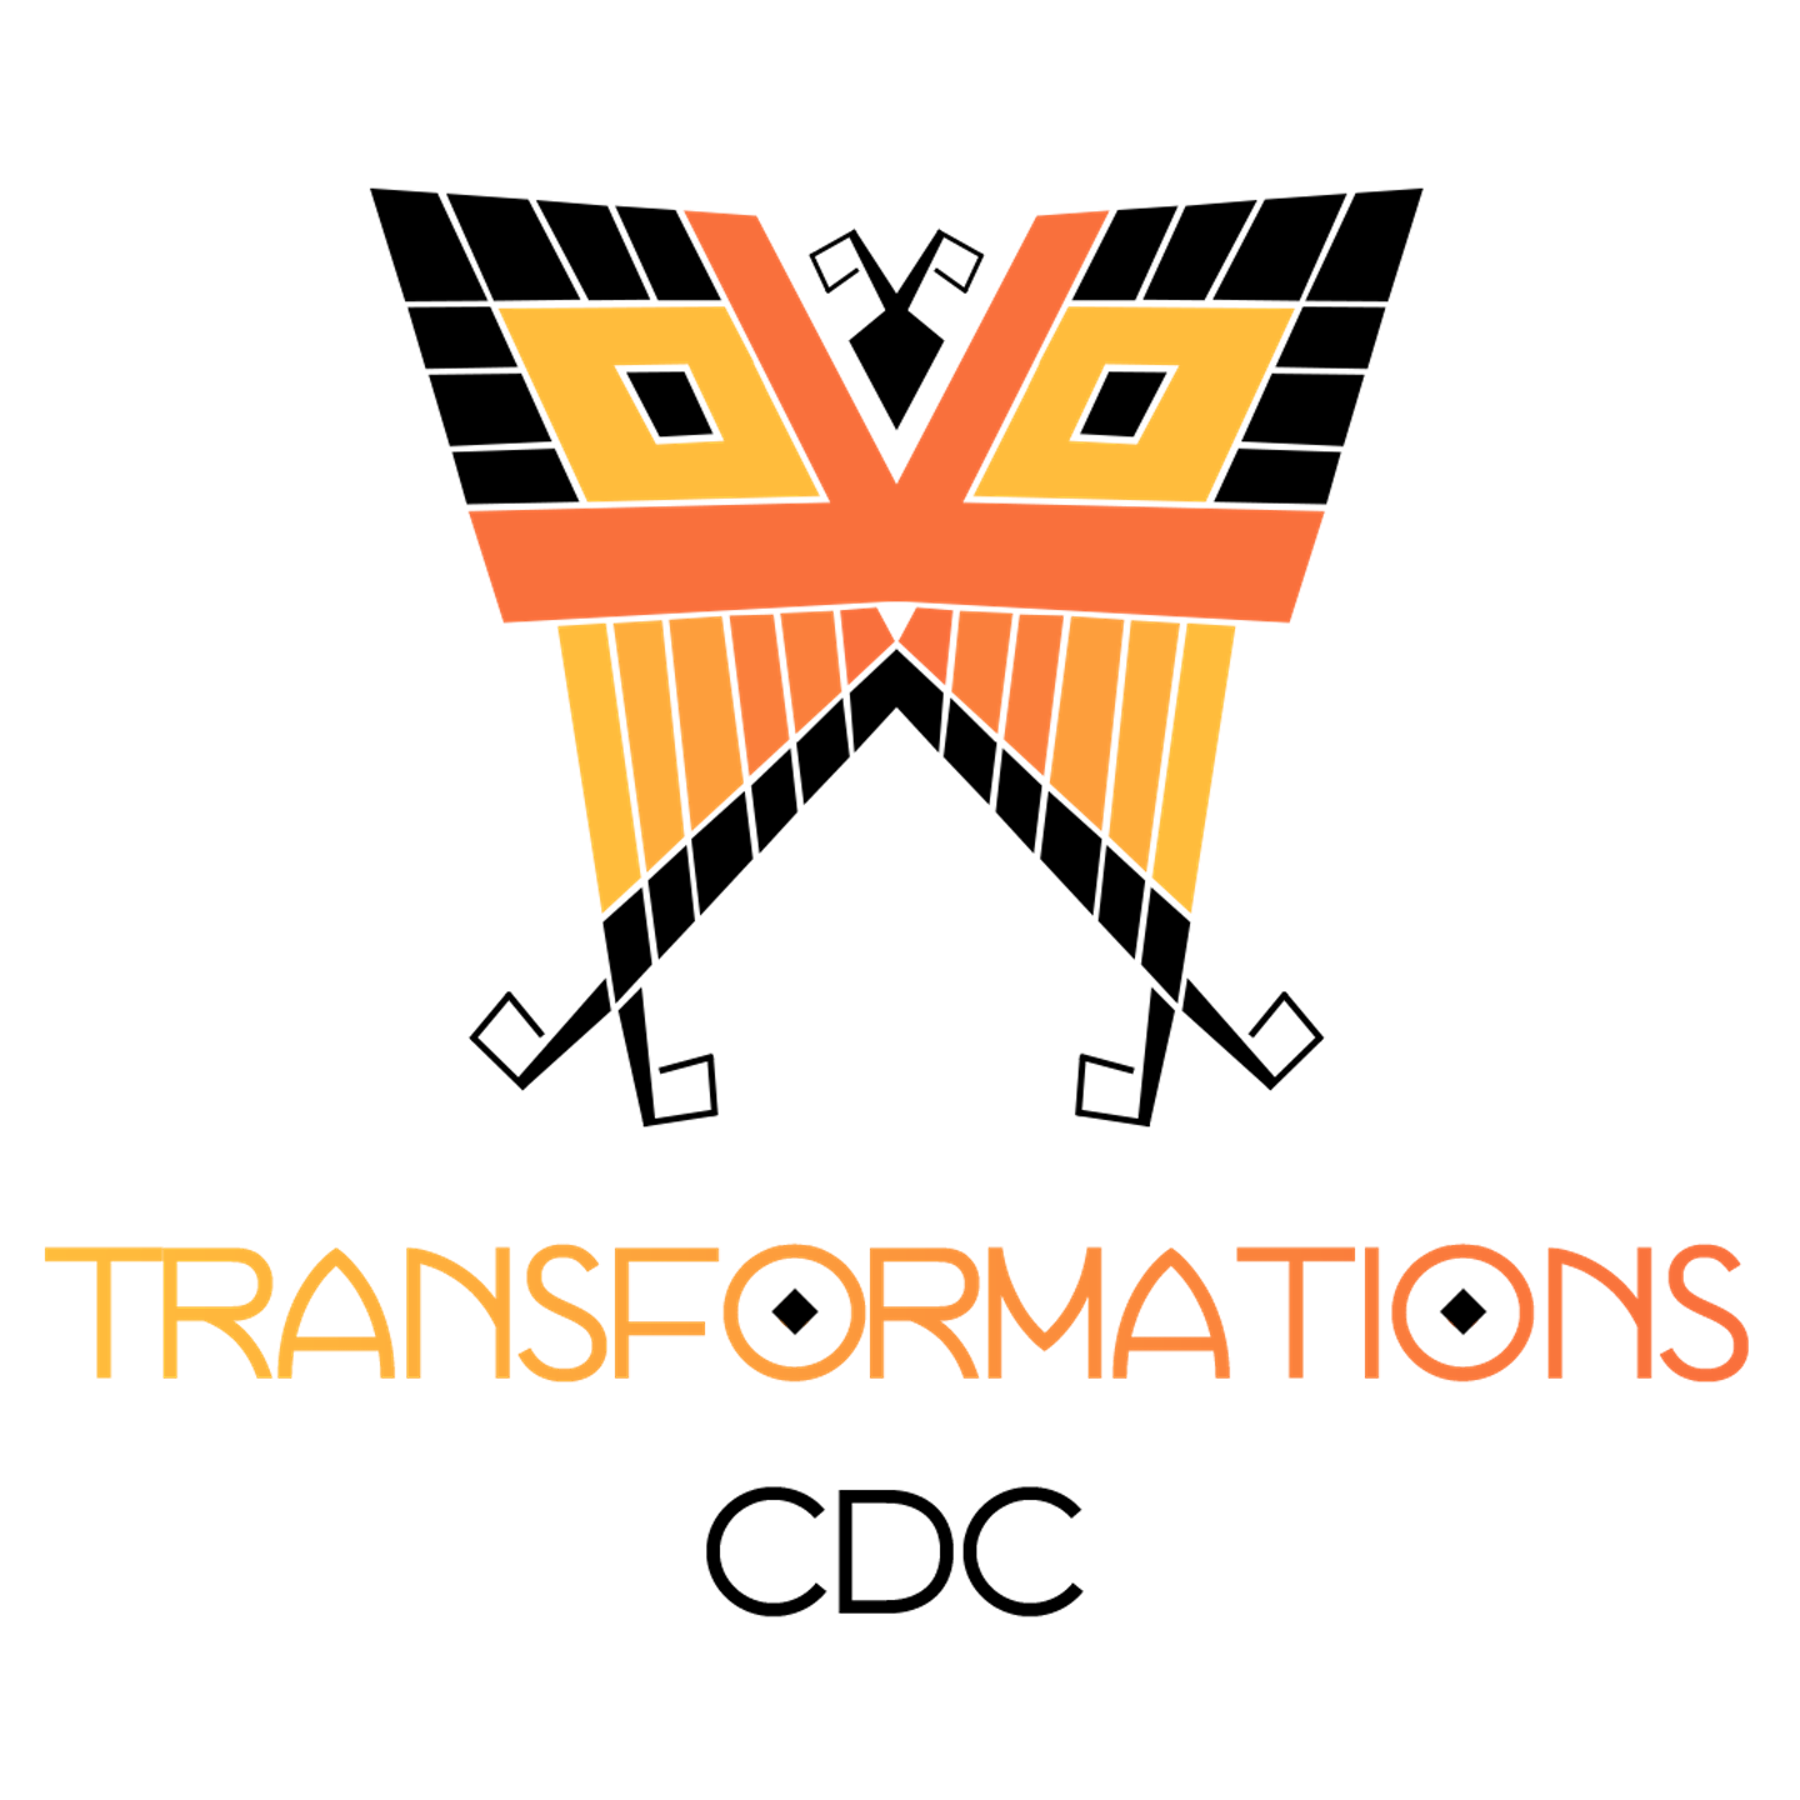 TransformationsCDC-MonarchWeaving-logo-1080x1080-FullColor-ClearBackground